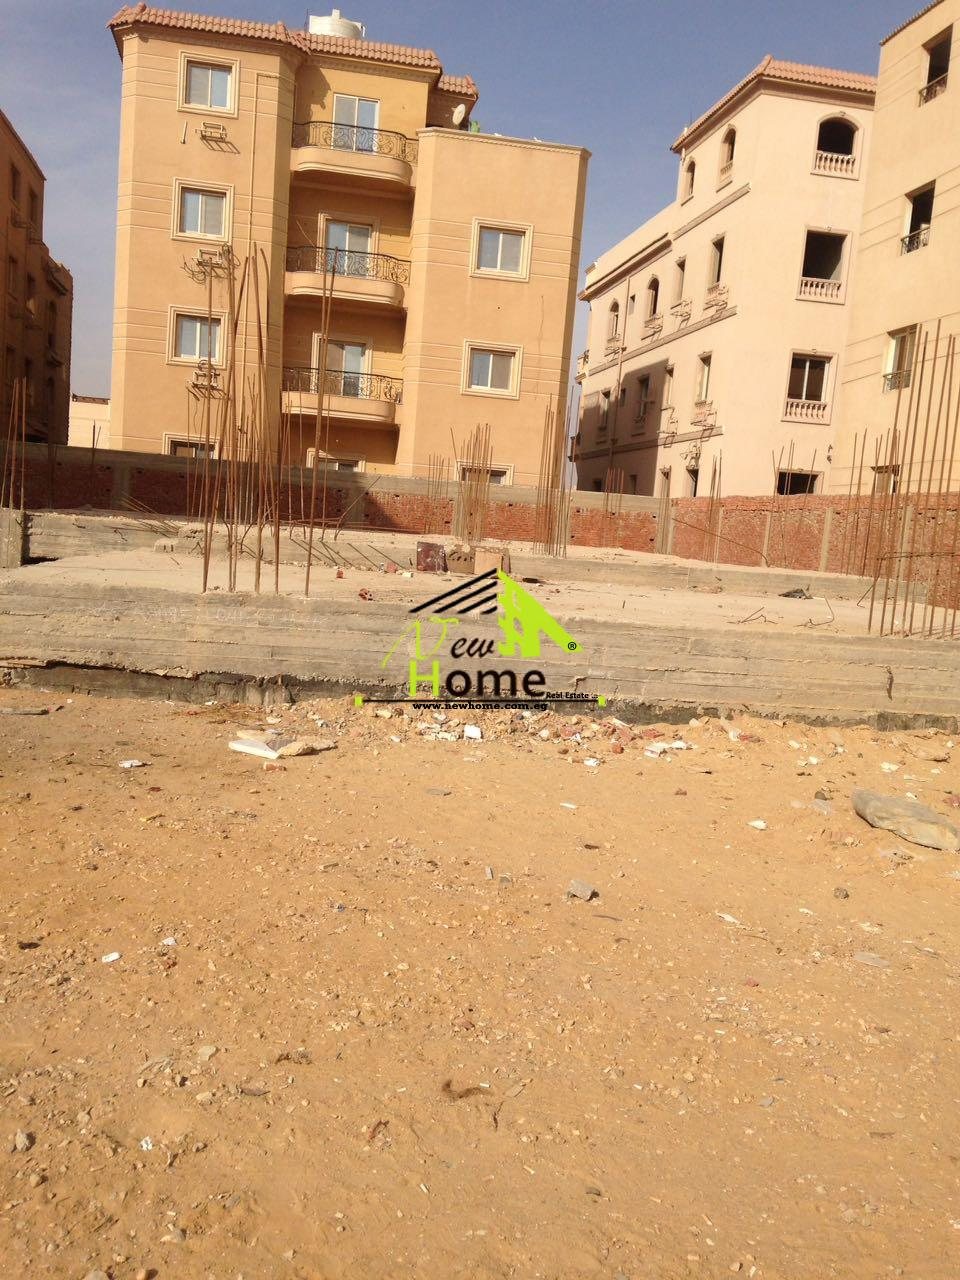 For sale apartment of villas Benfsj9 New Cairo Semi finished